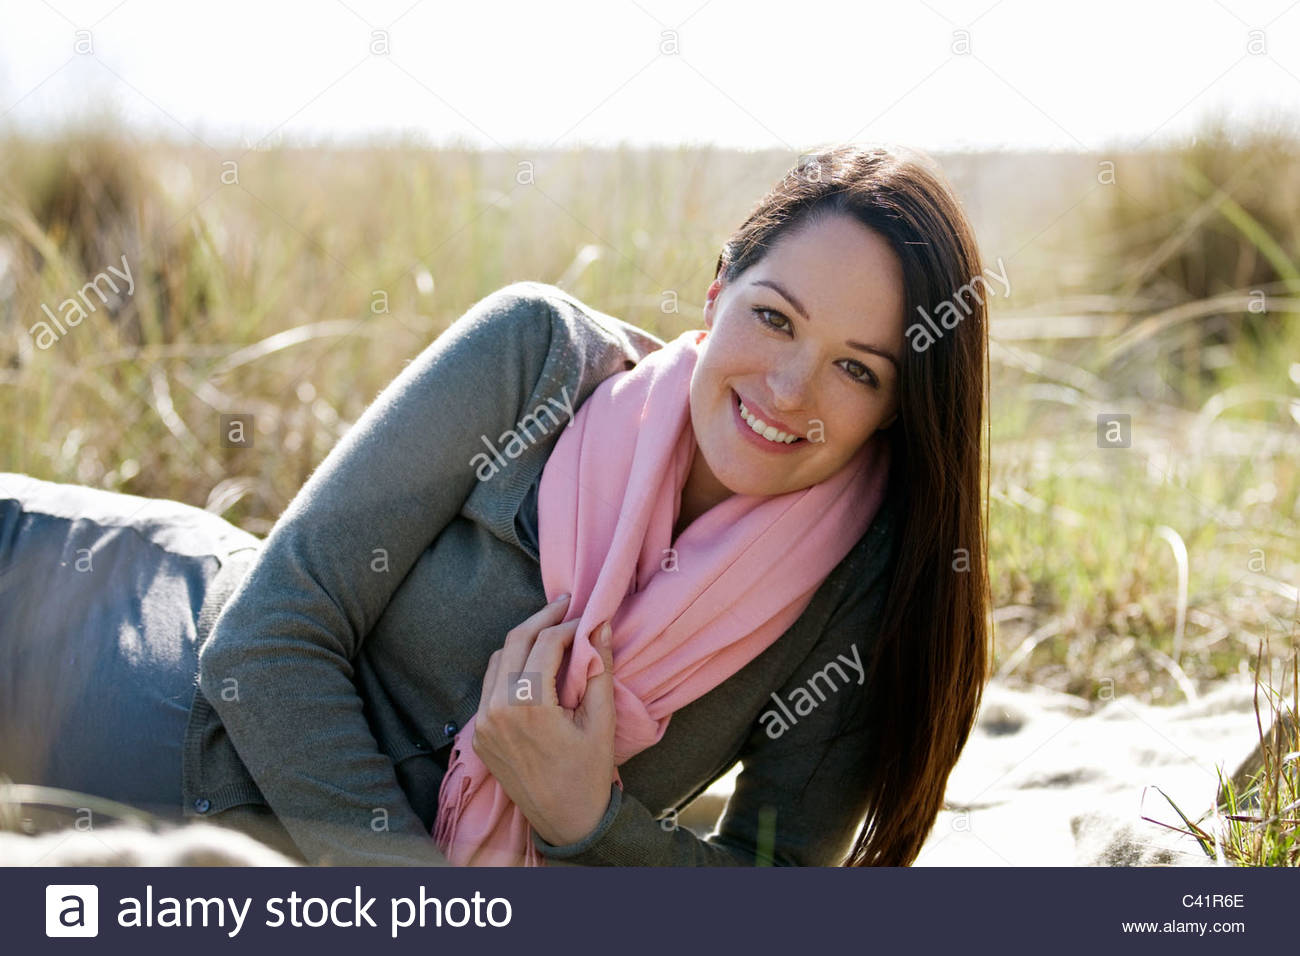 A pregnant woman lying amongst long grass, smiling - Stock Image